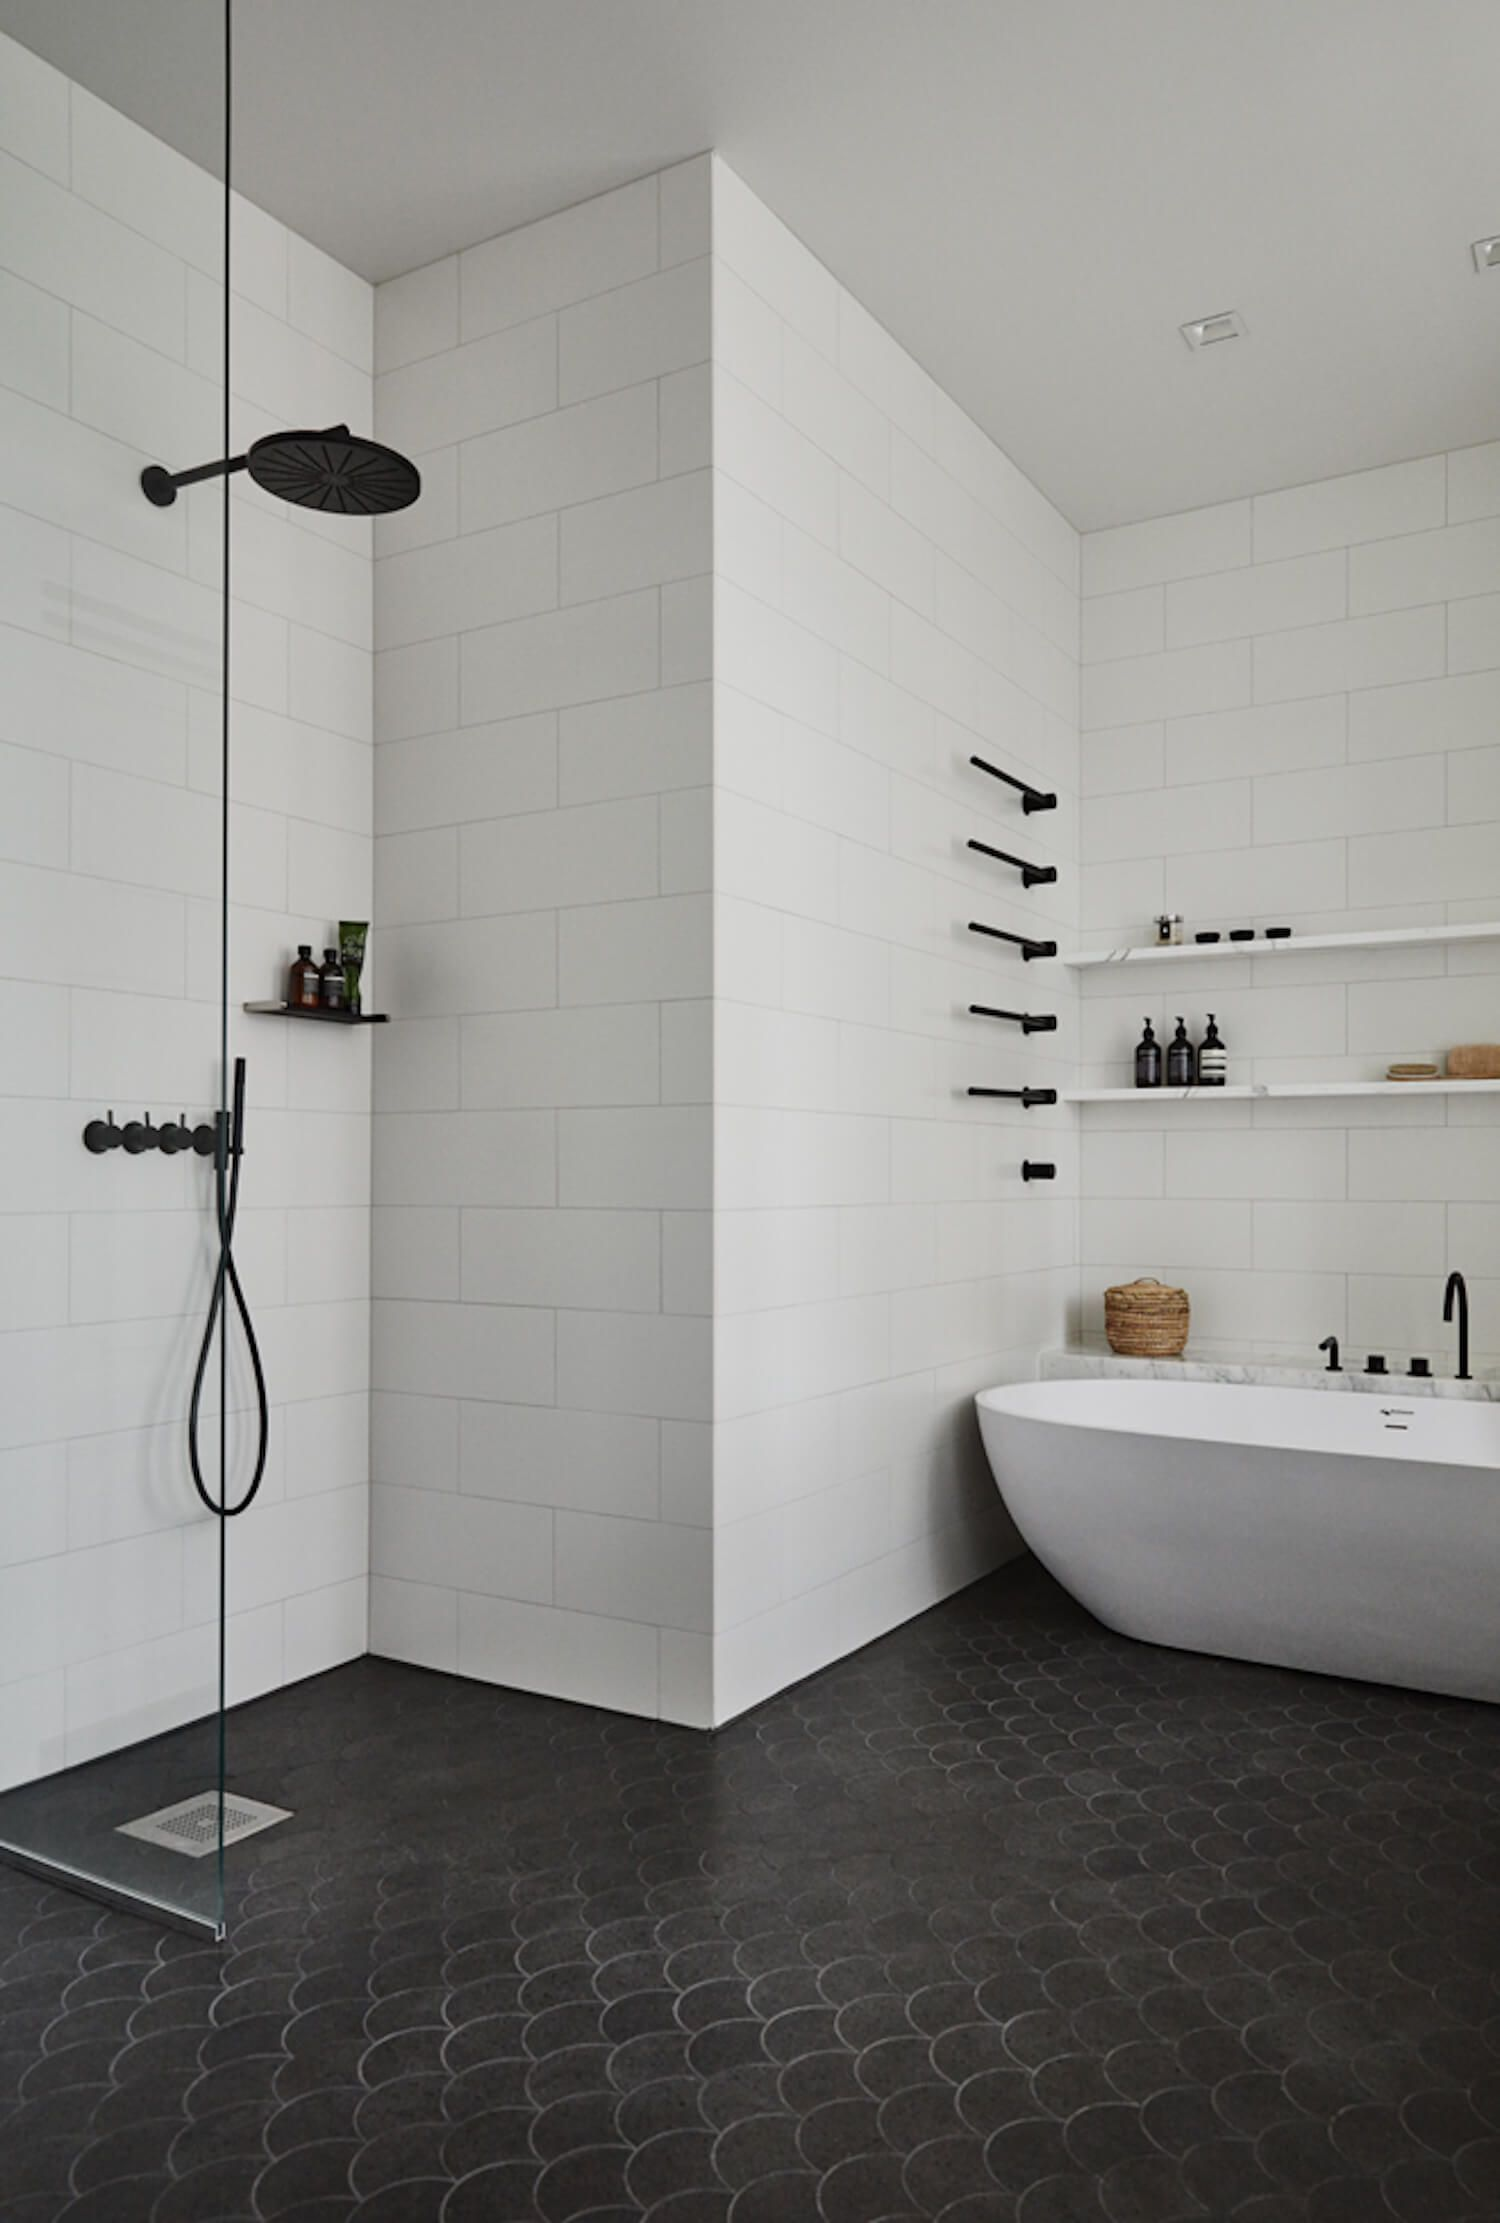 Monochrome Materials Get The Look Statement Bathrooms Bathroom - Bathroom renovation materials